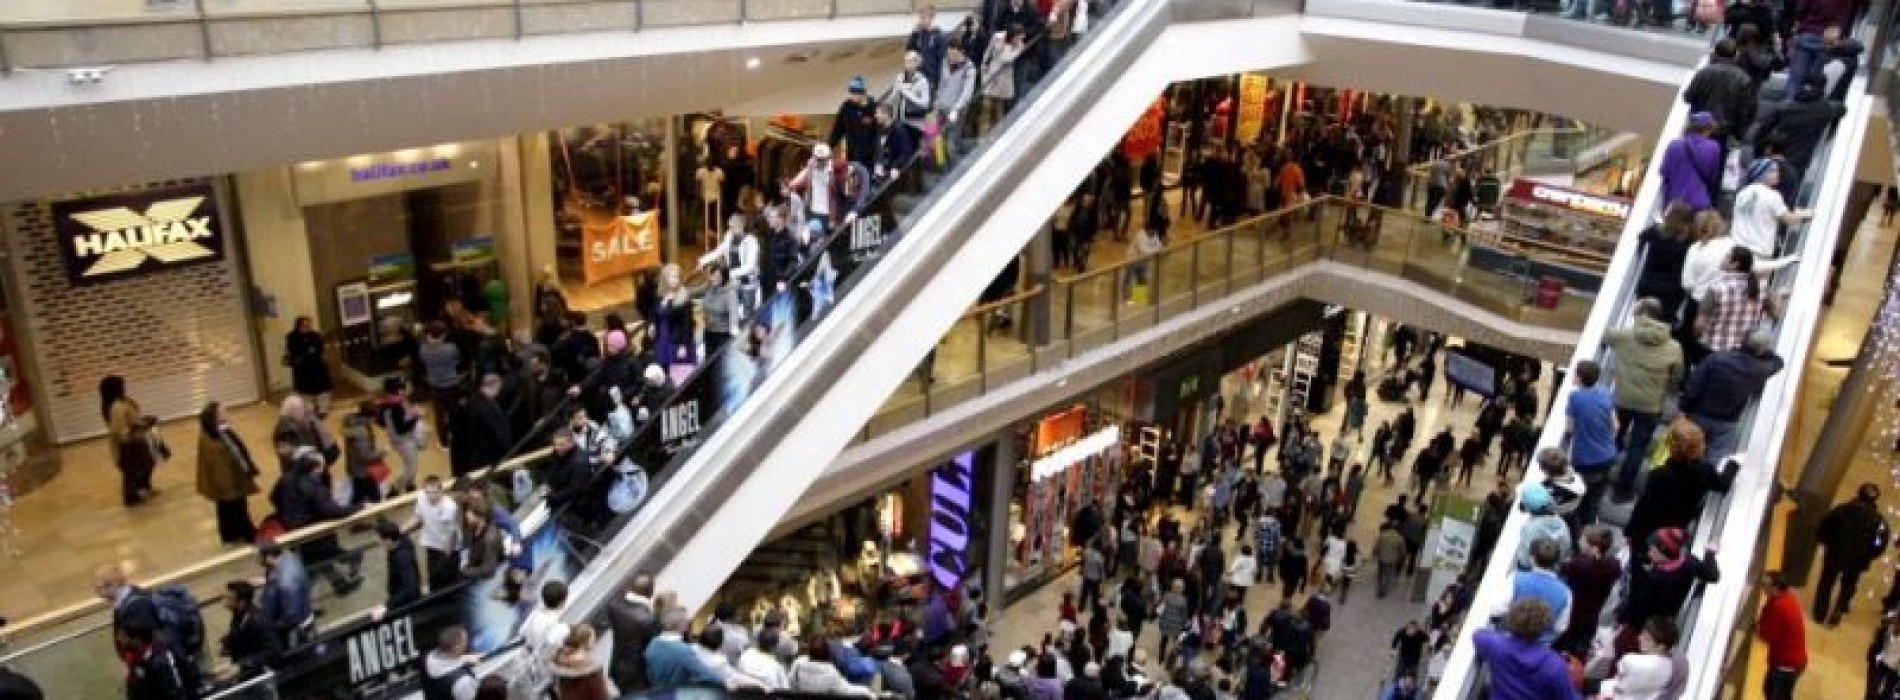 January sales shopping: retail therapy or anxiety inducing?